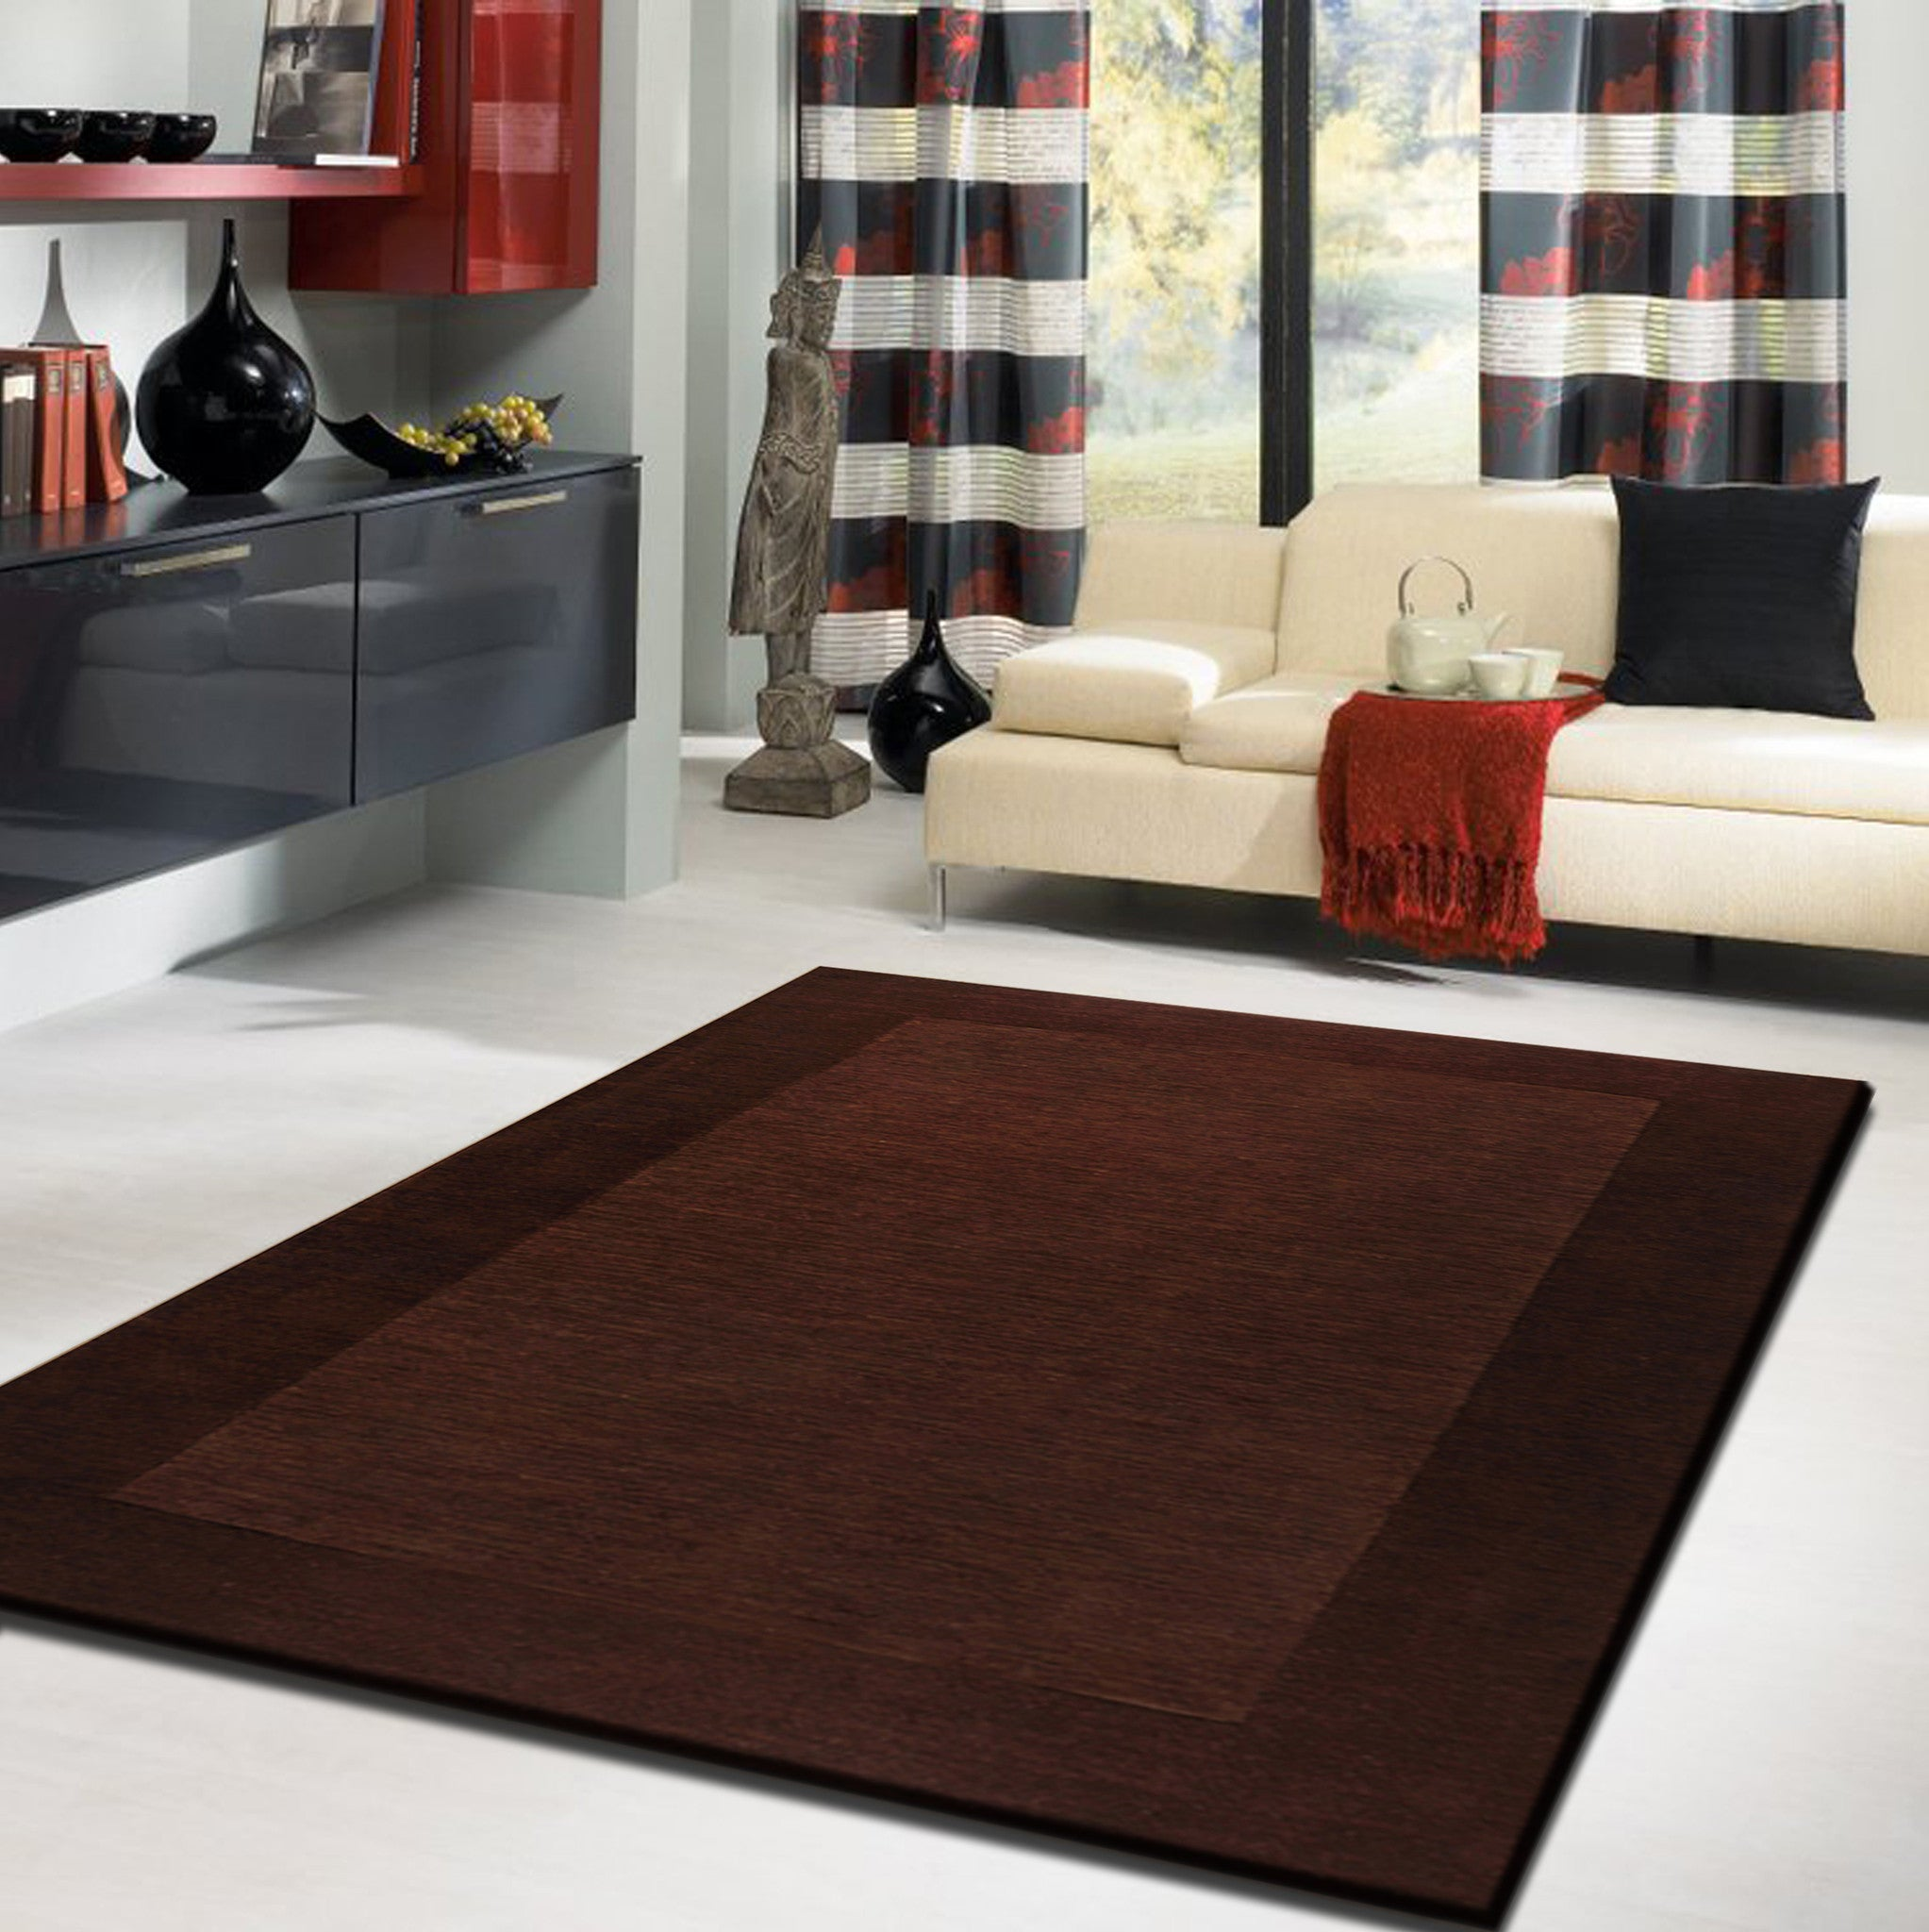 3 Piece Set Solid Brown Indoor Area Rug Rug Addiction